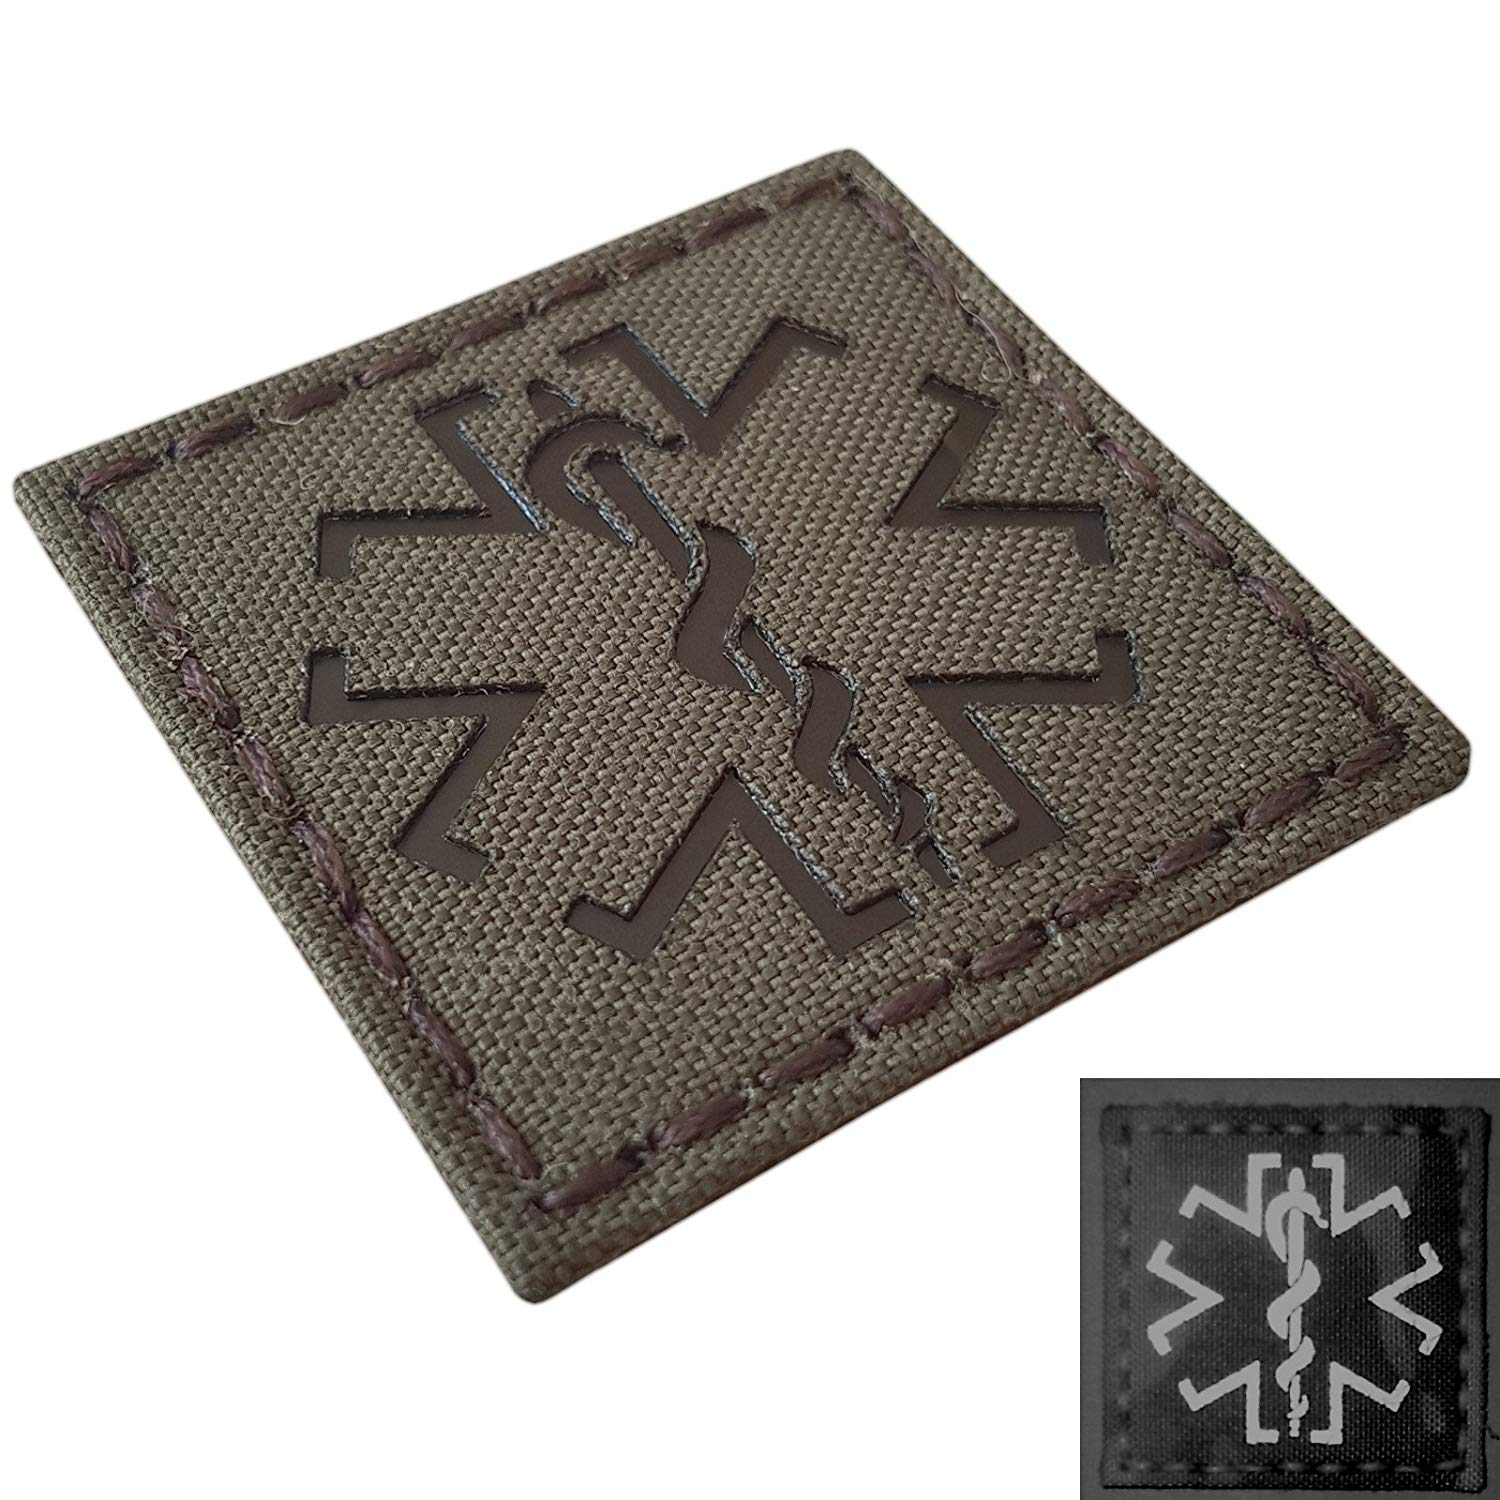 IR Ranger Green EMS Star of Life Medic 2x2 Infrared Laser Cut Tactical Morale Touch Fastener Patch